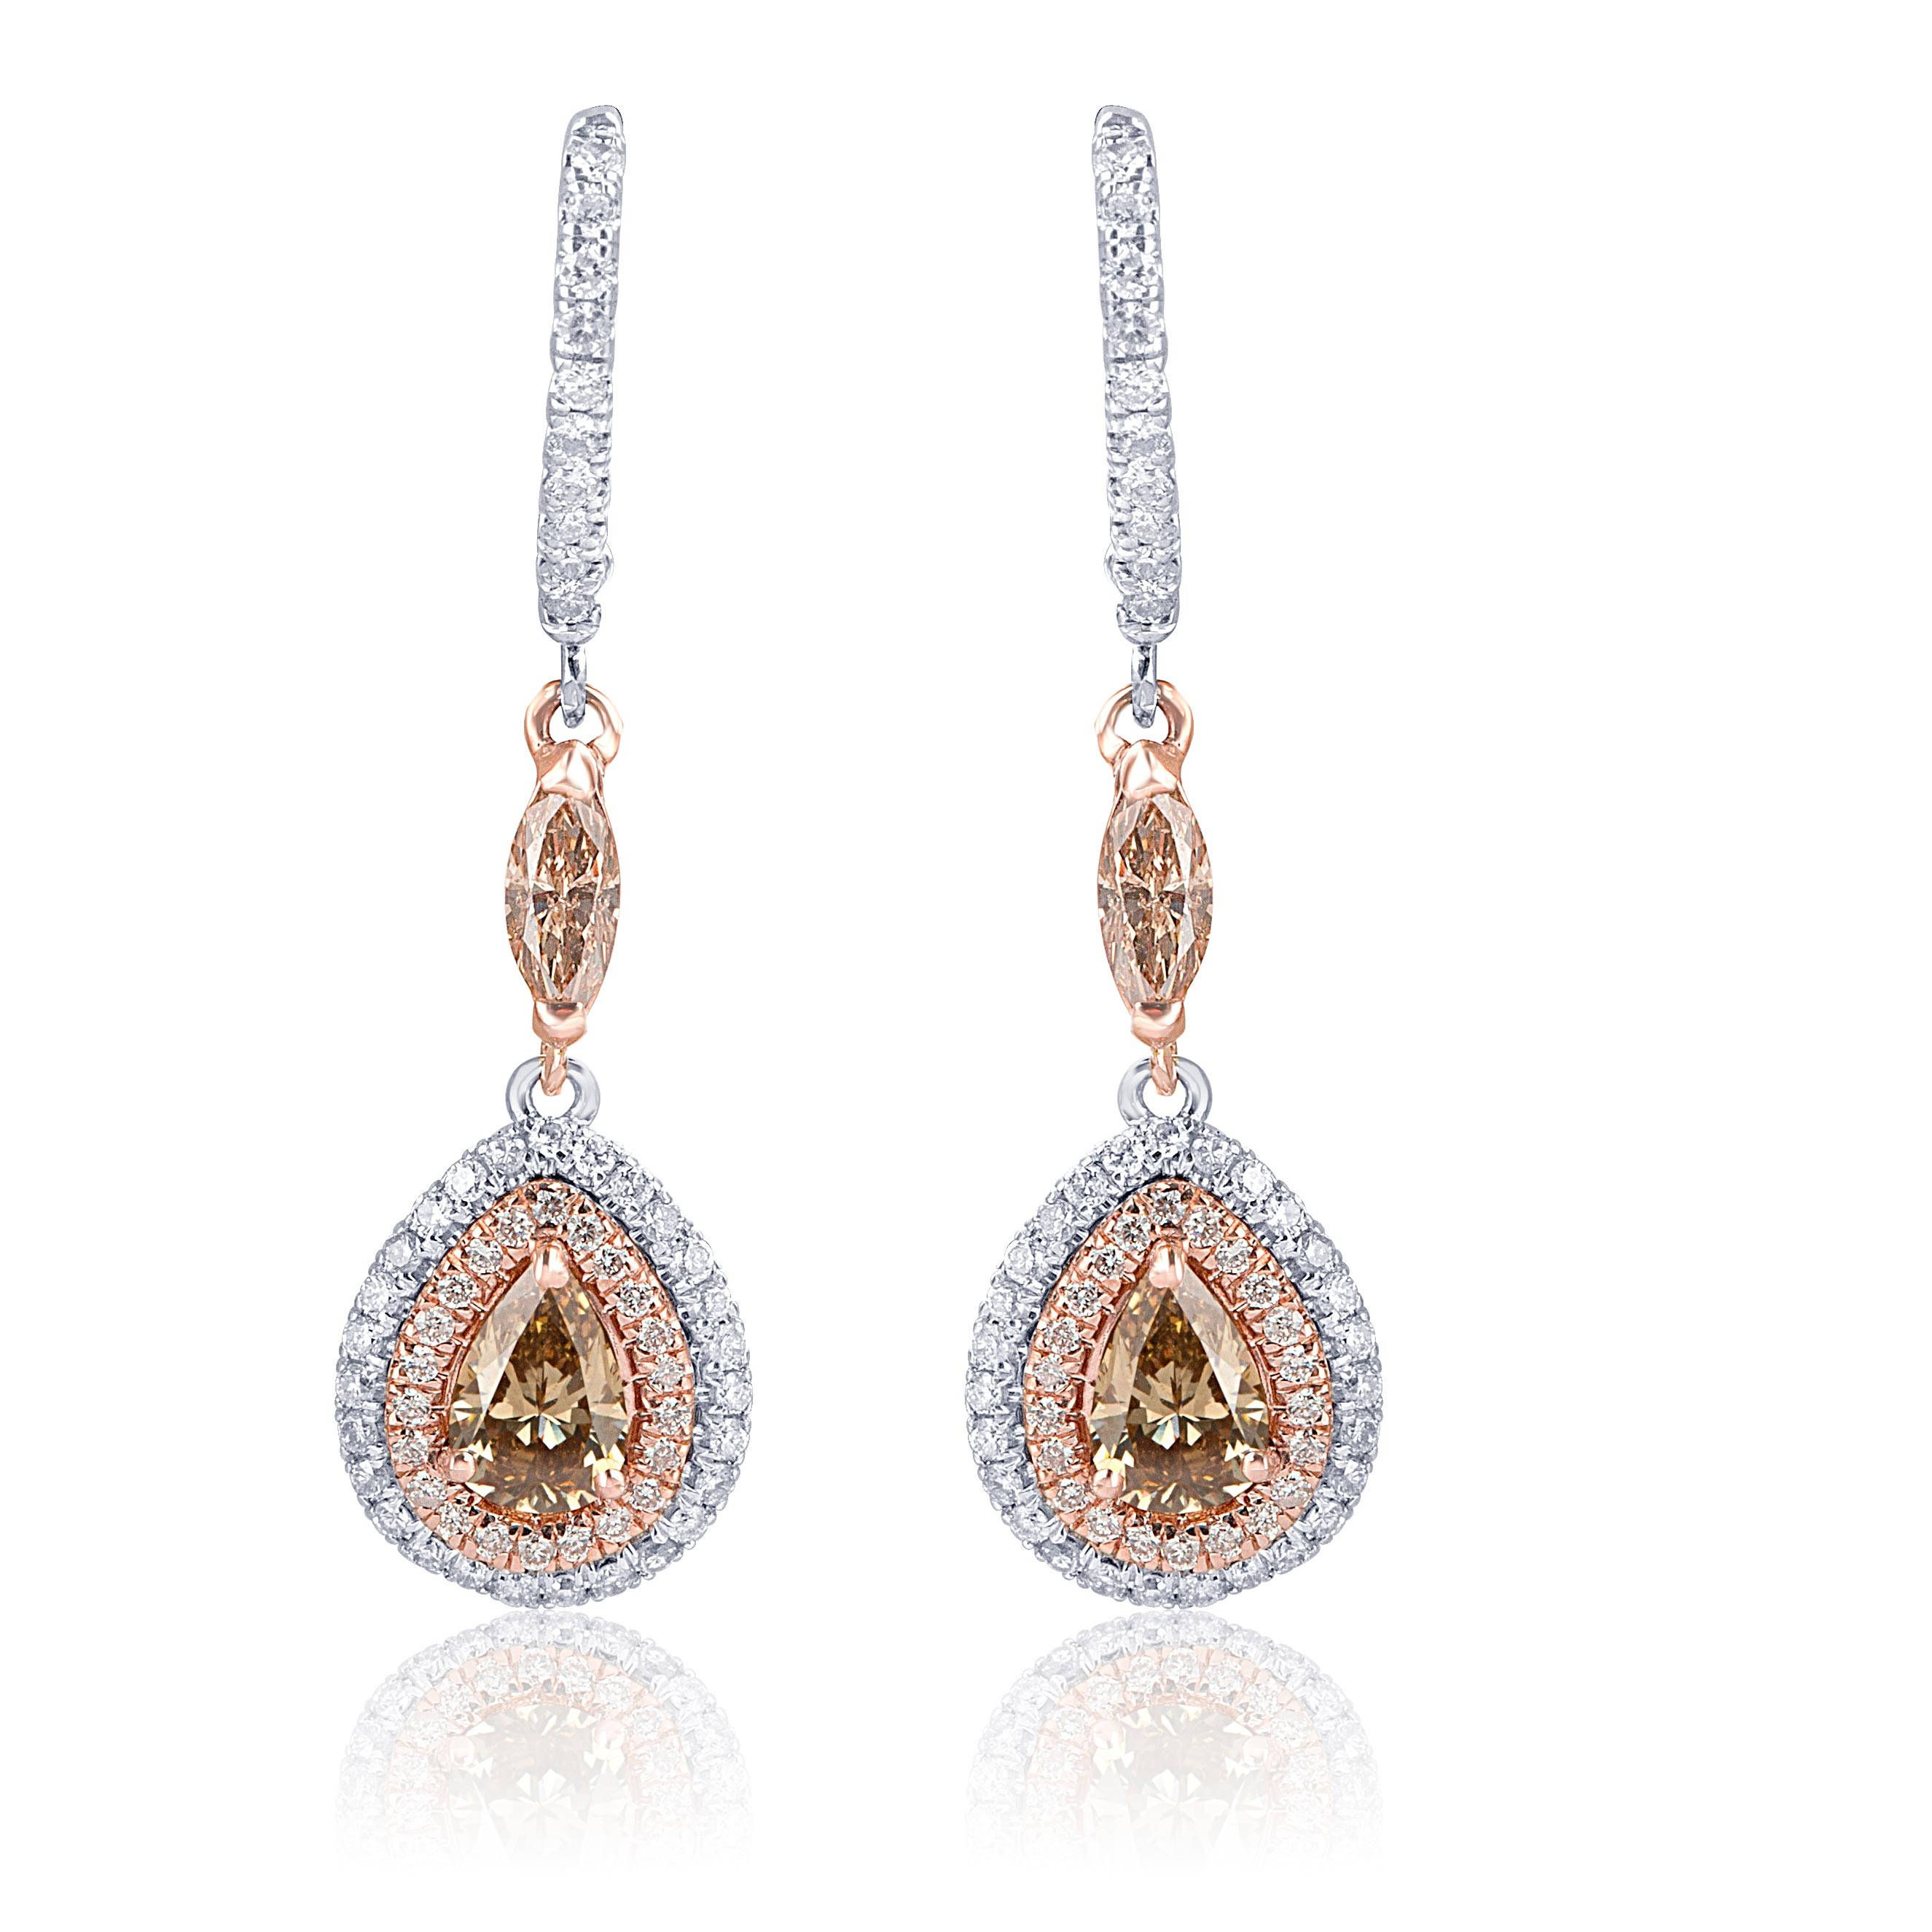 Champagne Diamond Drop Earrings 2 26 Ct Diamond Teardrop Earrings